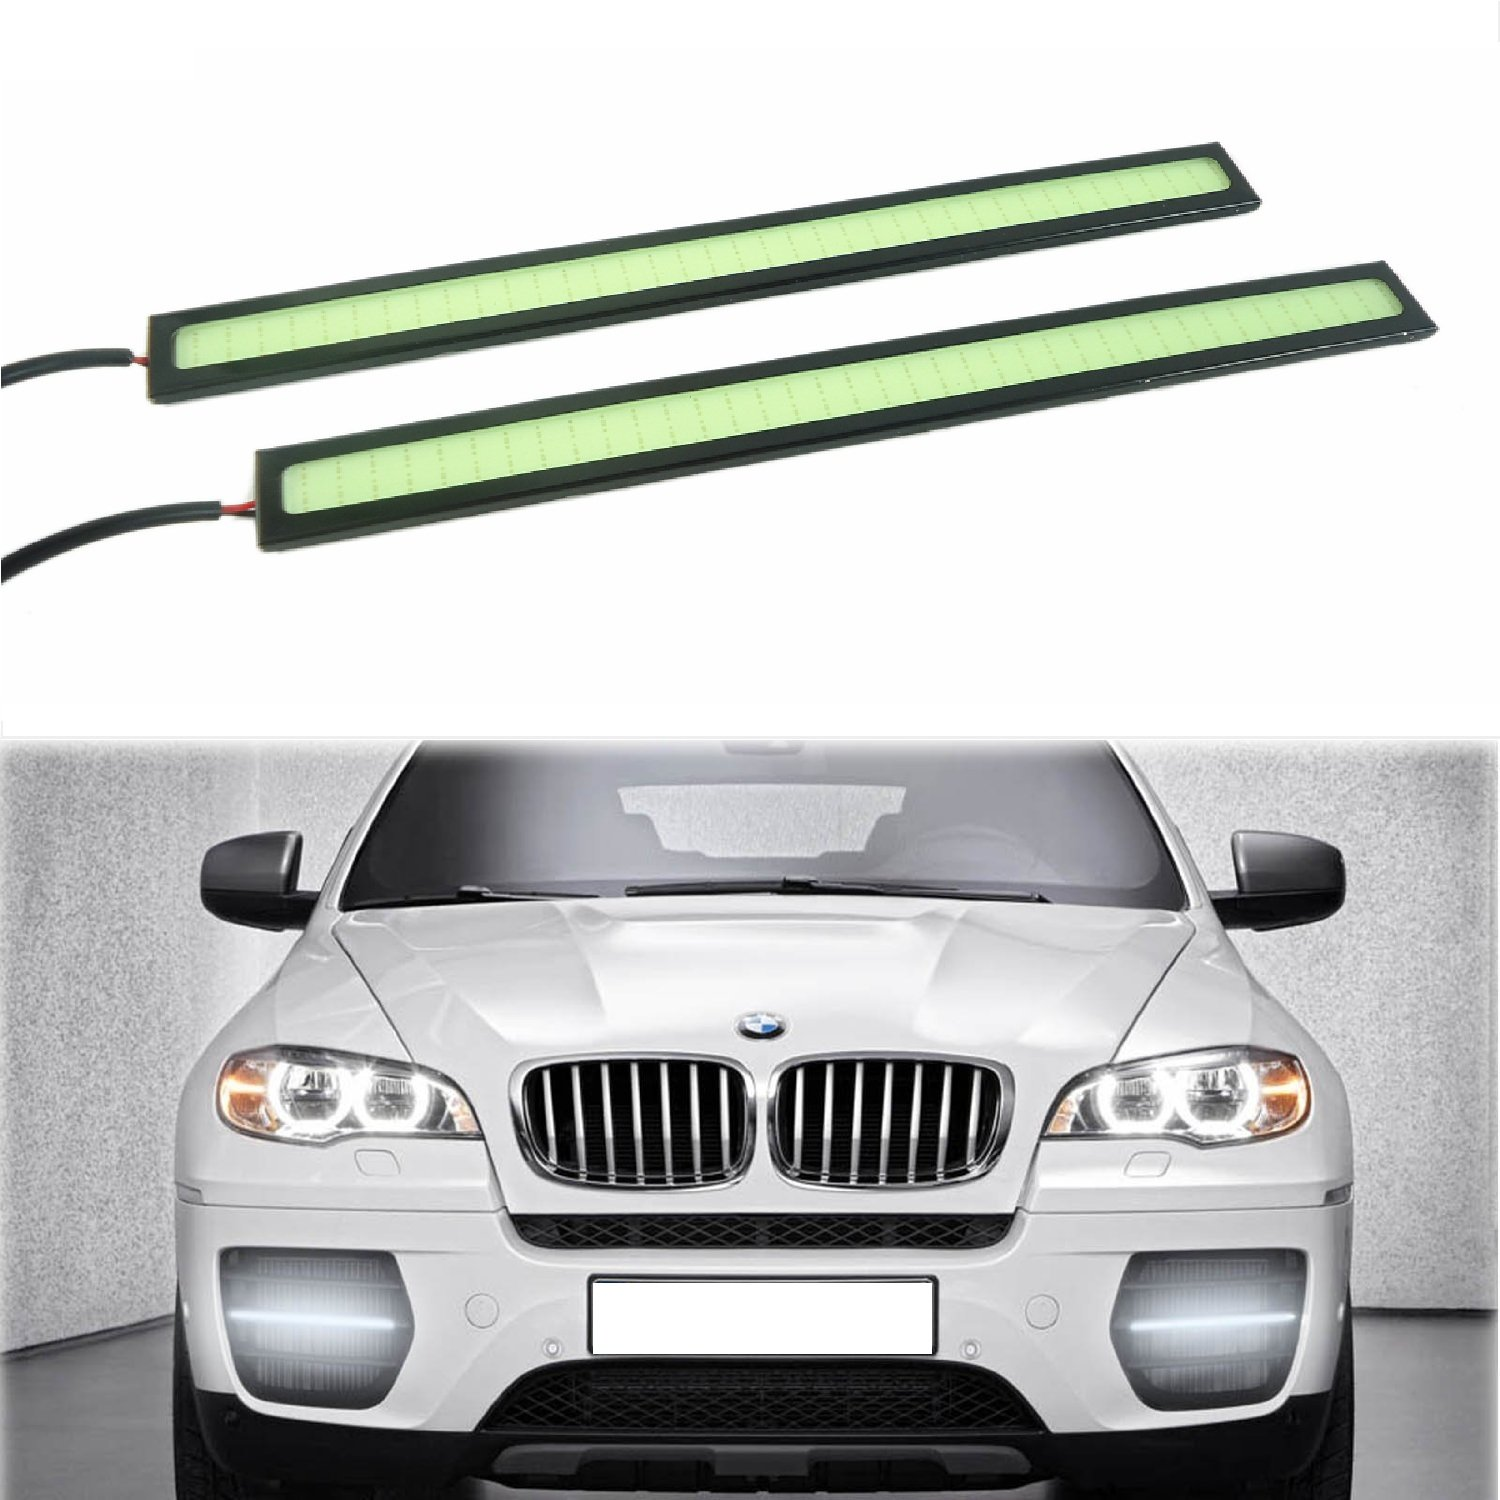 RioRand 2 Pcs 6W 6000K Waterproof Aluminum High Power Xenon Slim LED Light Daytime Running Light SUV Sedan Coupe Vehicle Lamp